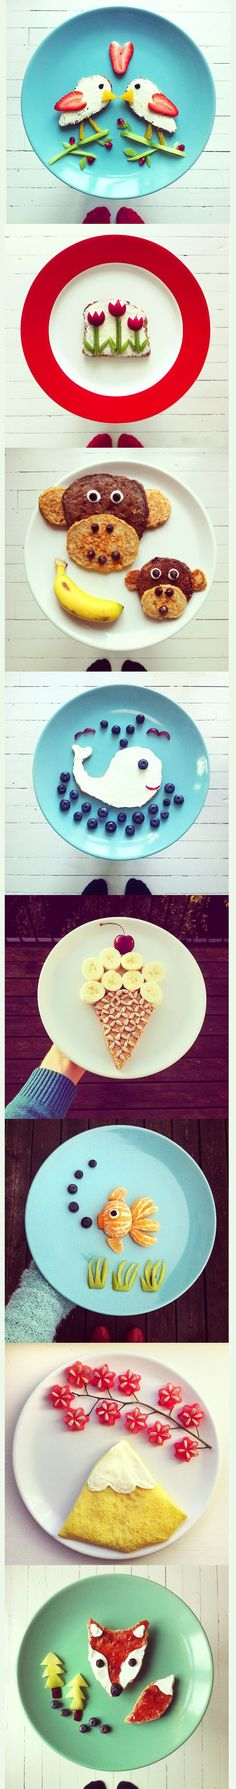 Cheerful Food Art (June 2013 Pinner: @Kendra Henseler Henseler Henseler Halterman)